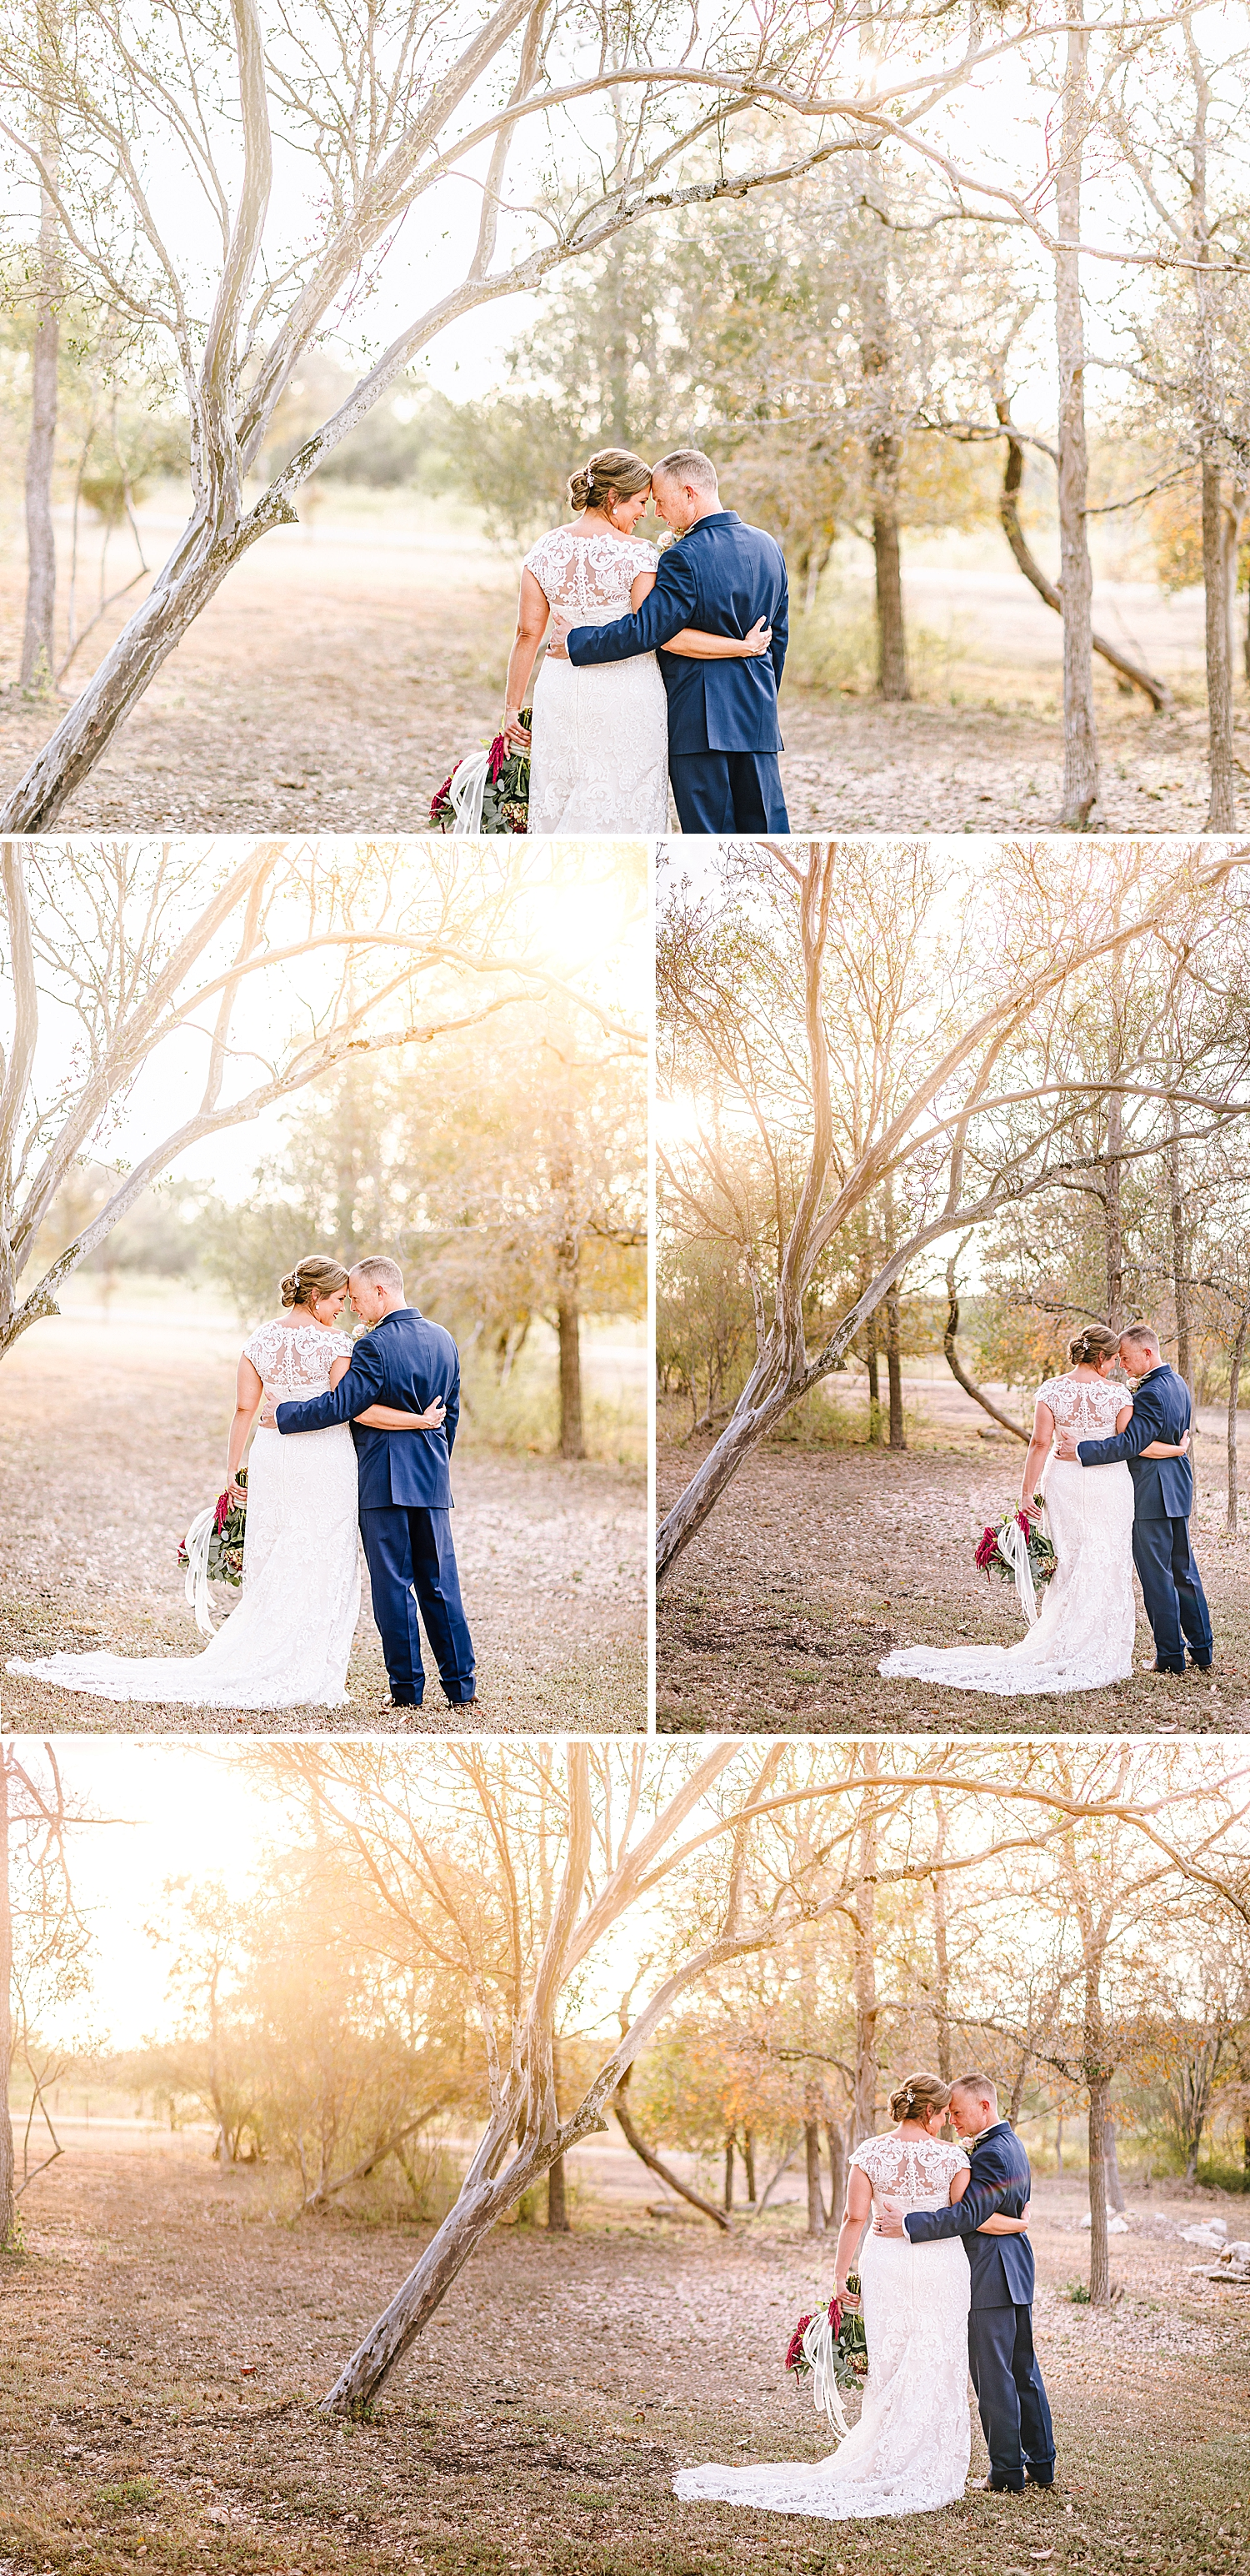 Geronimo-Oaks-Wedding-Venue-Seguin-Texas-Elegant-Navy-Burgundy-Wedding-Carly-Barton-Photography_0050.jpg